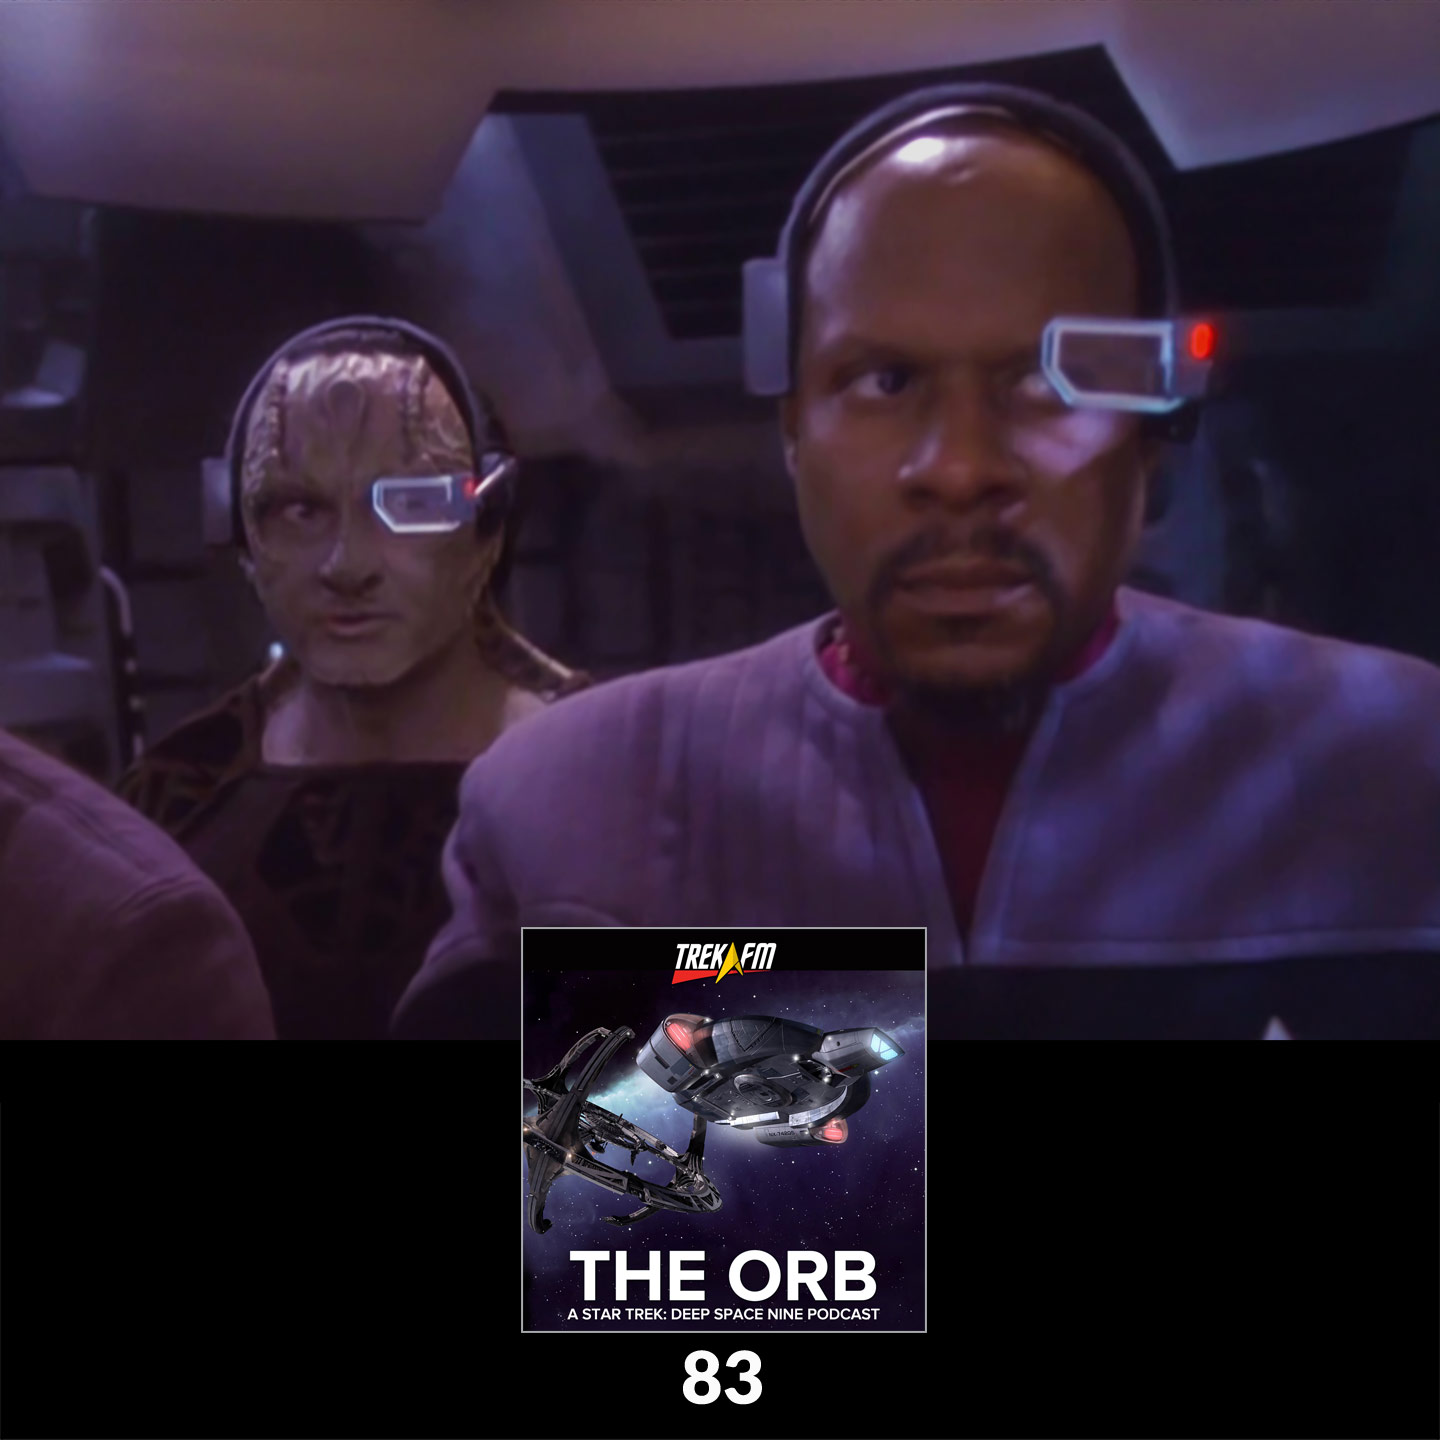 The Orb 83: When You Unzip the Turtleneck…